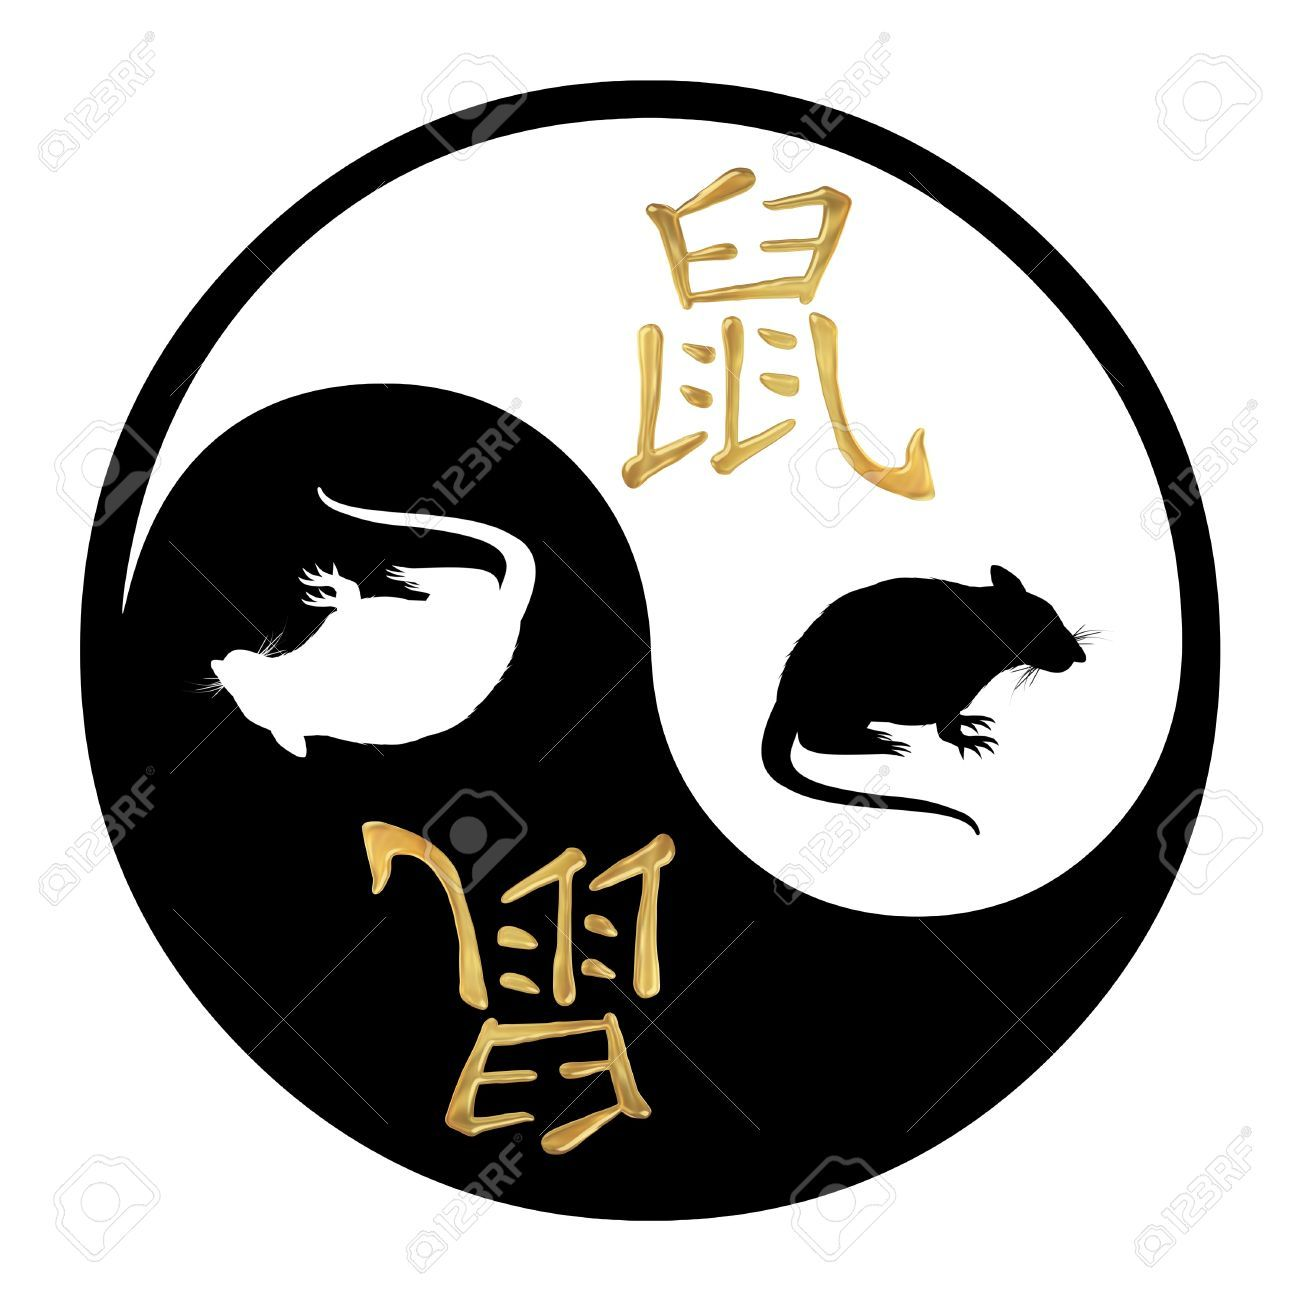 9551587 Yin Yang Symbol With Chinese Text And Image Of A Rat Stock